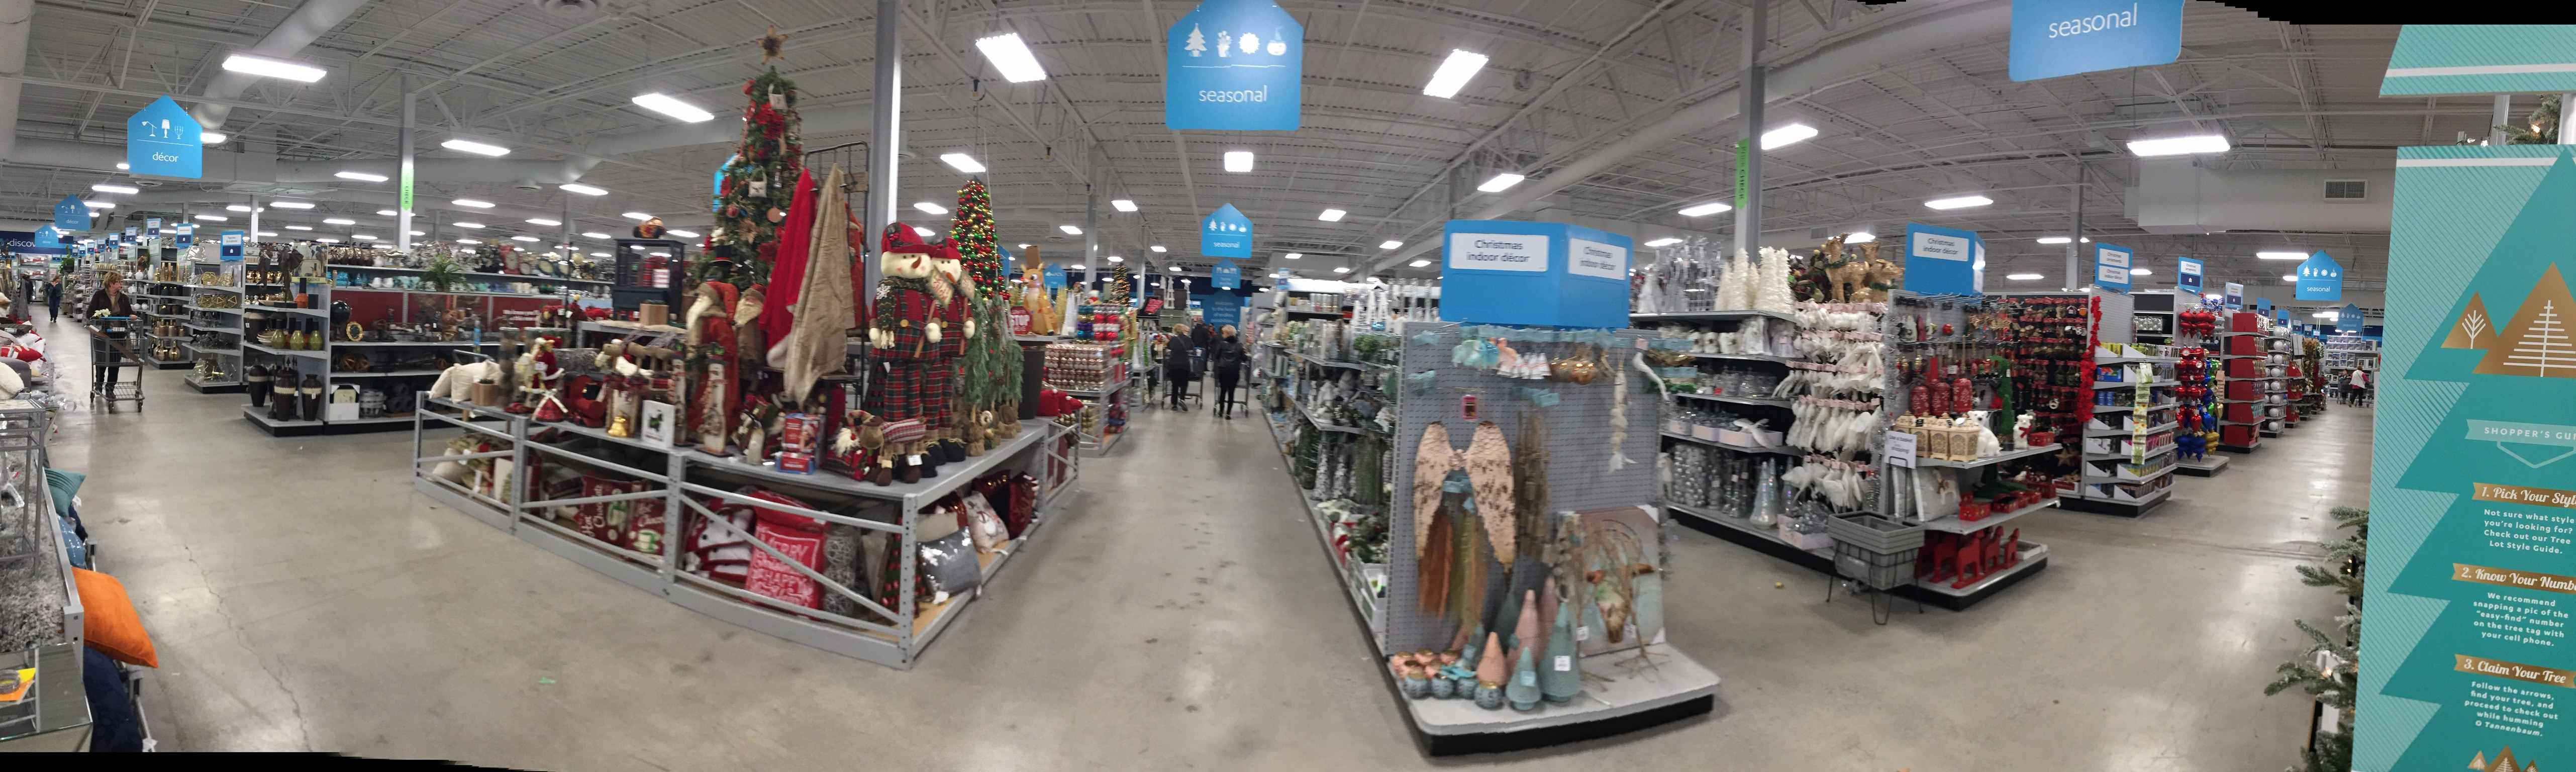 Home Decor Superstore 88 garden ridge home decor superstore part 2 At Home Pano